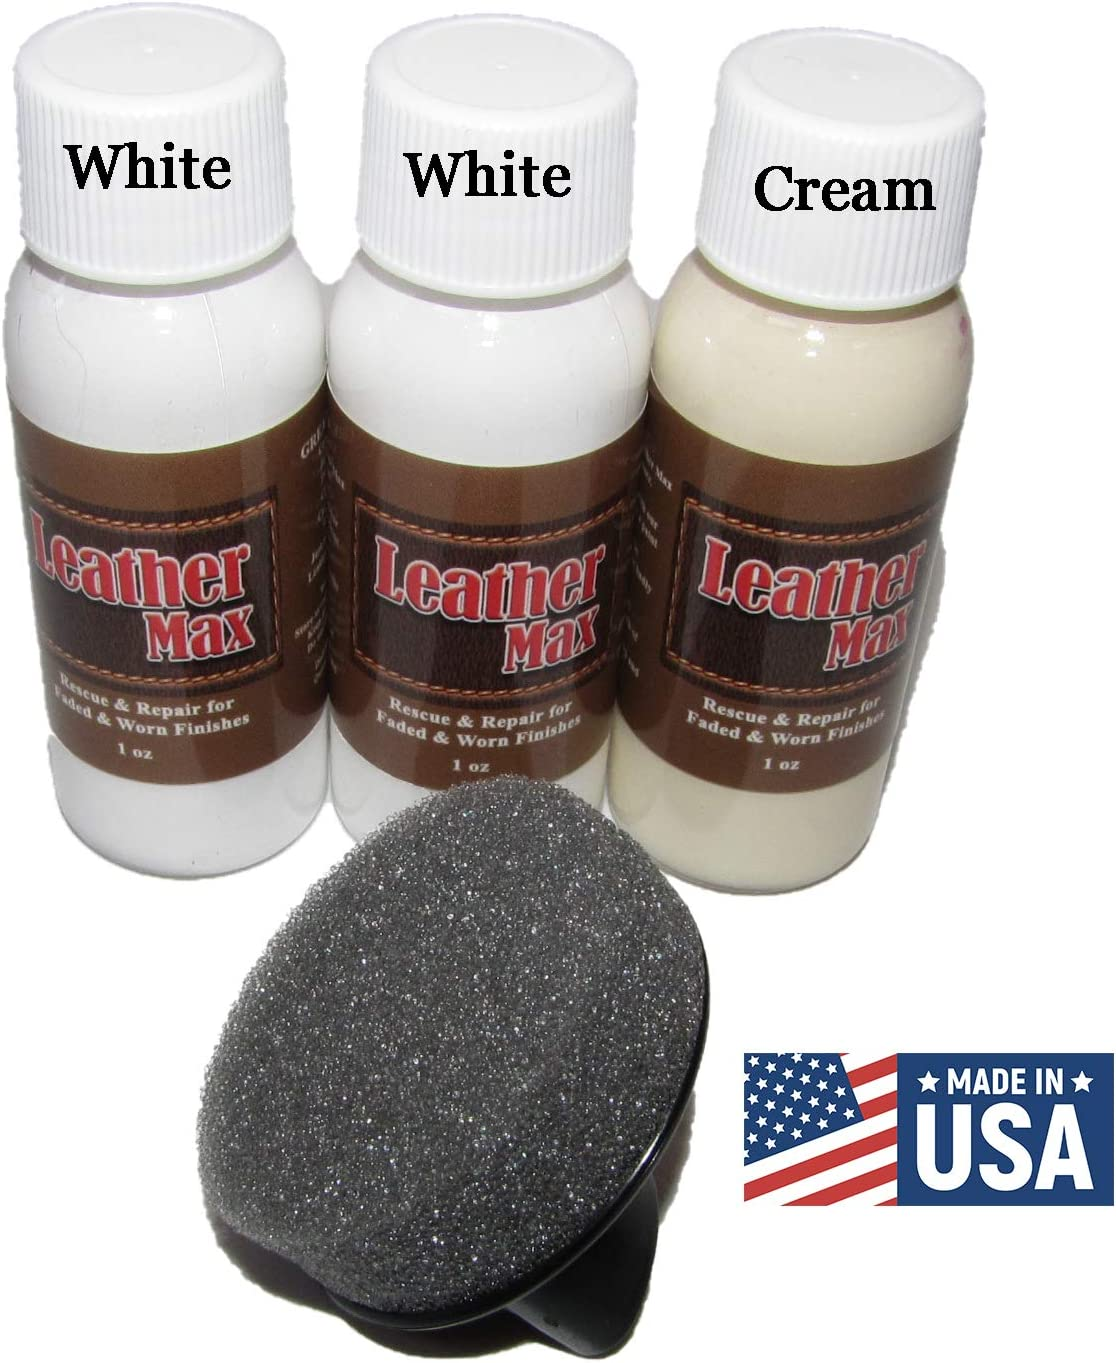 Restore Recolor /& Repair // 3 Color Shades to Blend with//Leather Vinyl Bonded and More Wine Mix Leather Max Quick Blend Refinish and Repair Kit